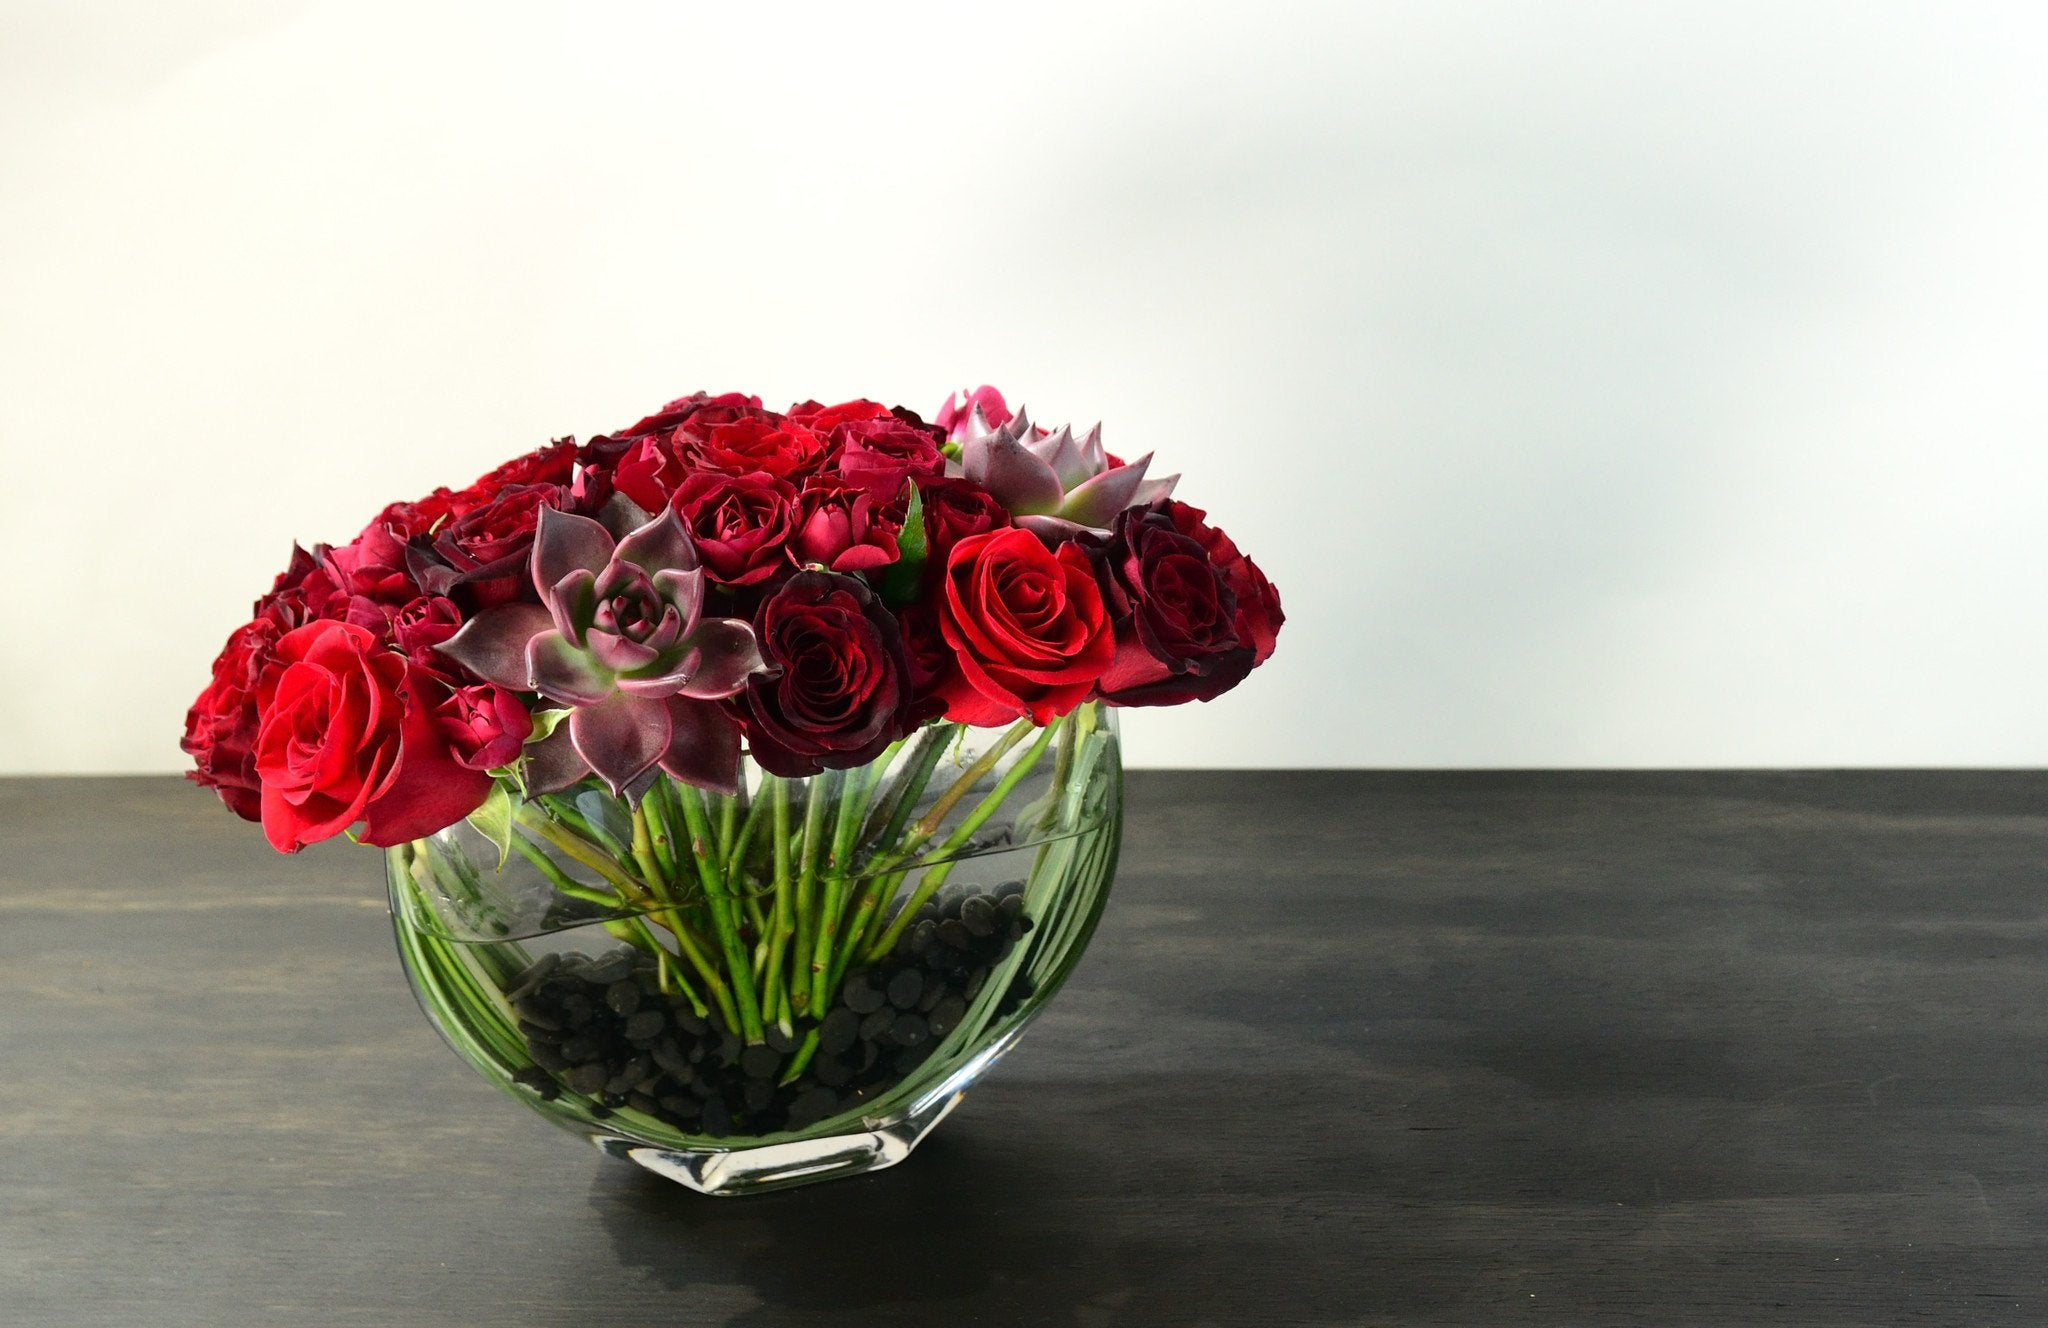 deep passion red roses nyc-slide